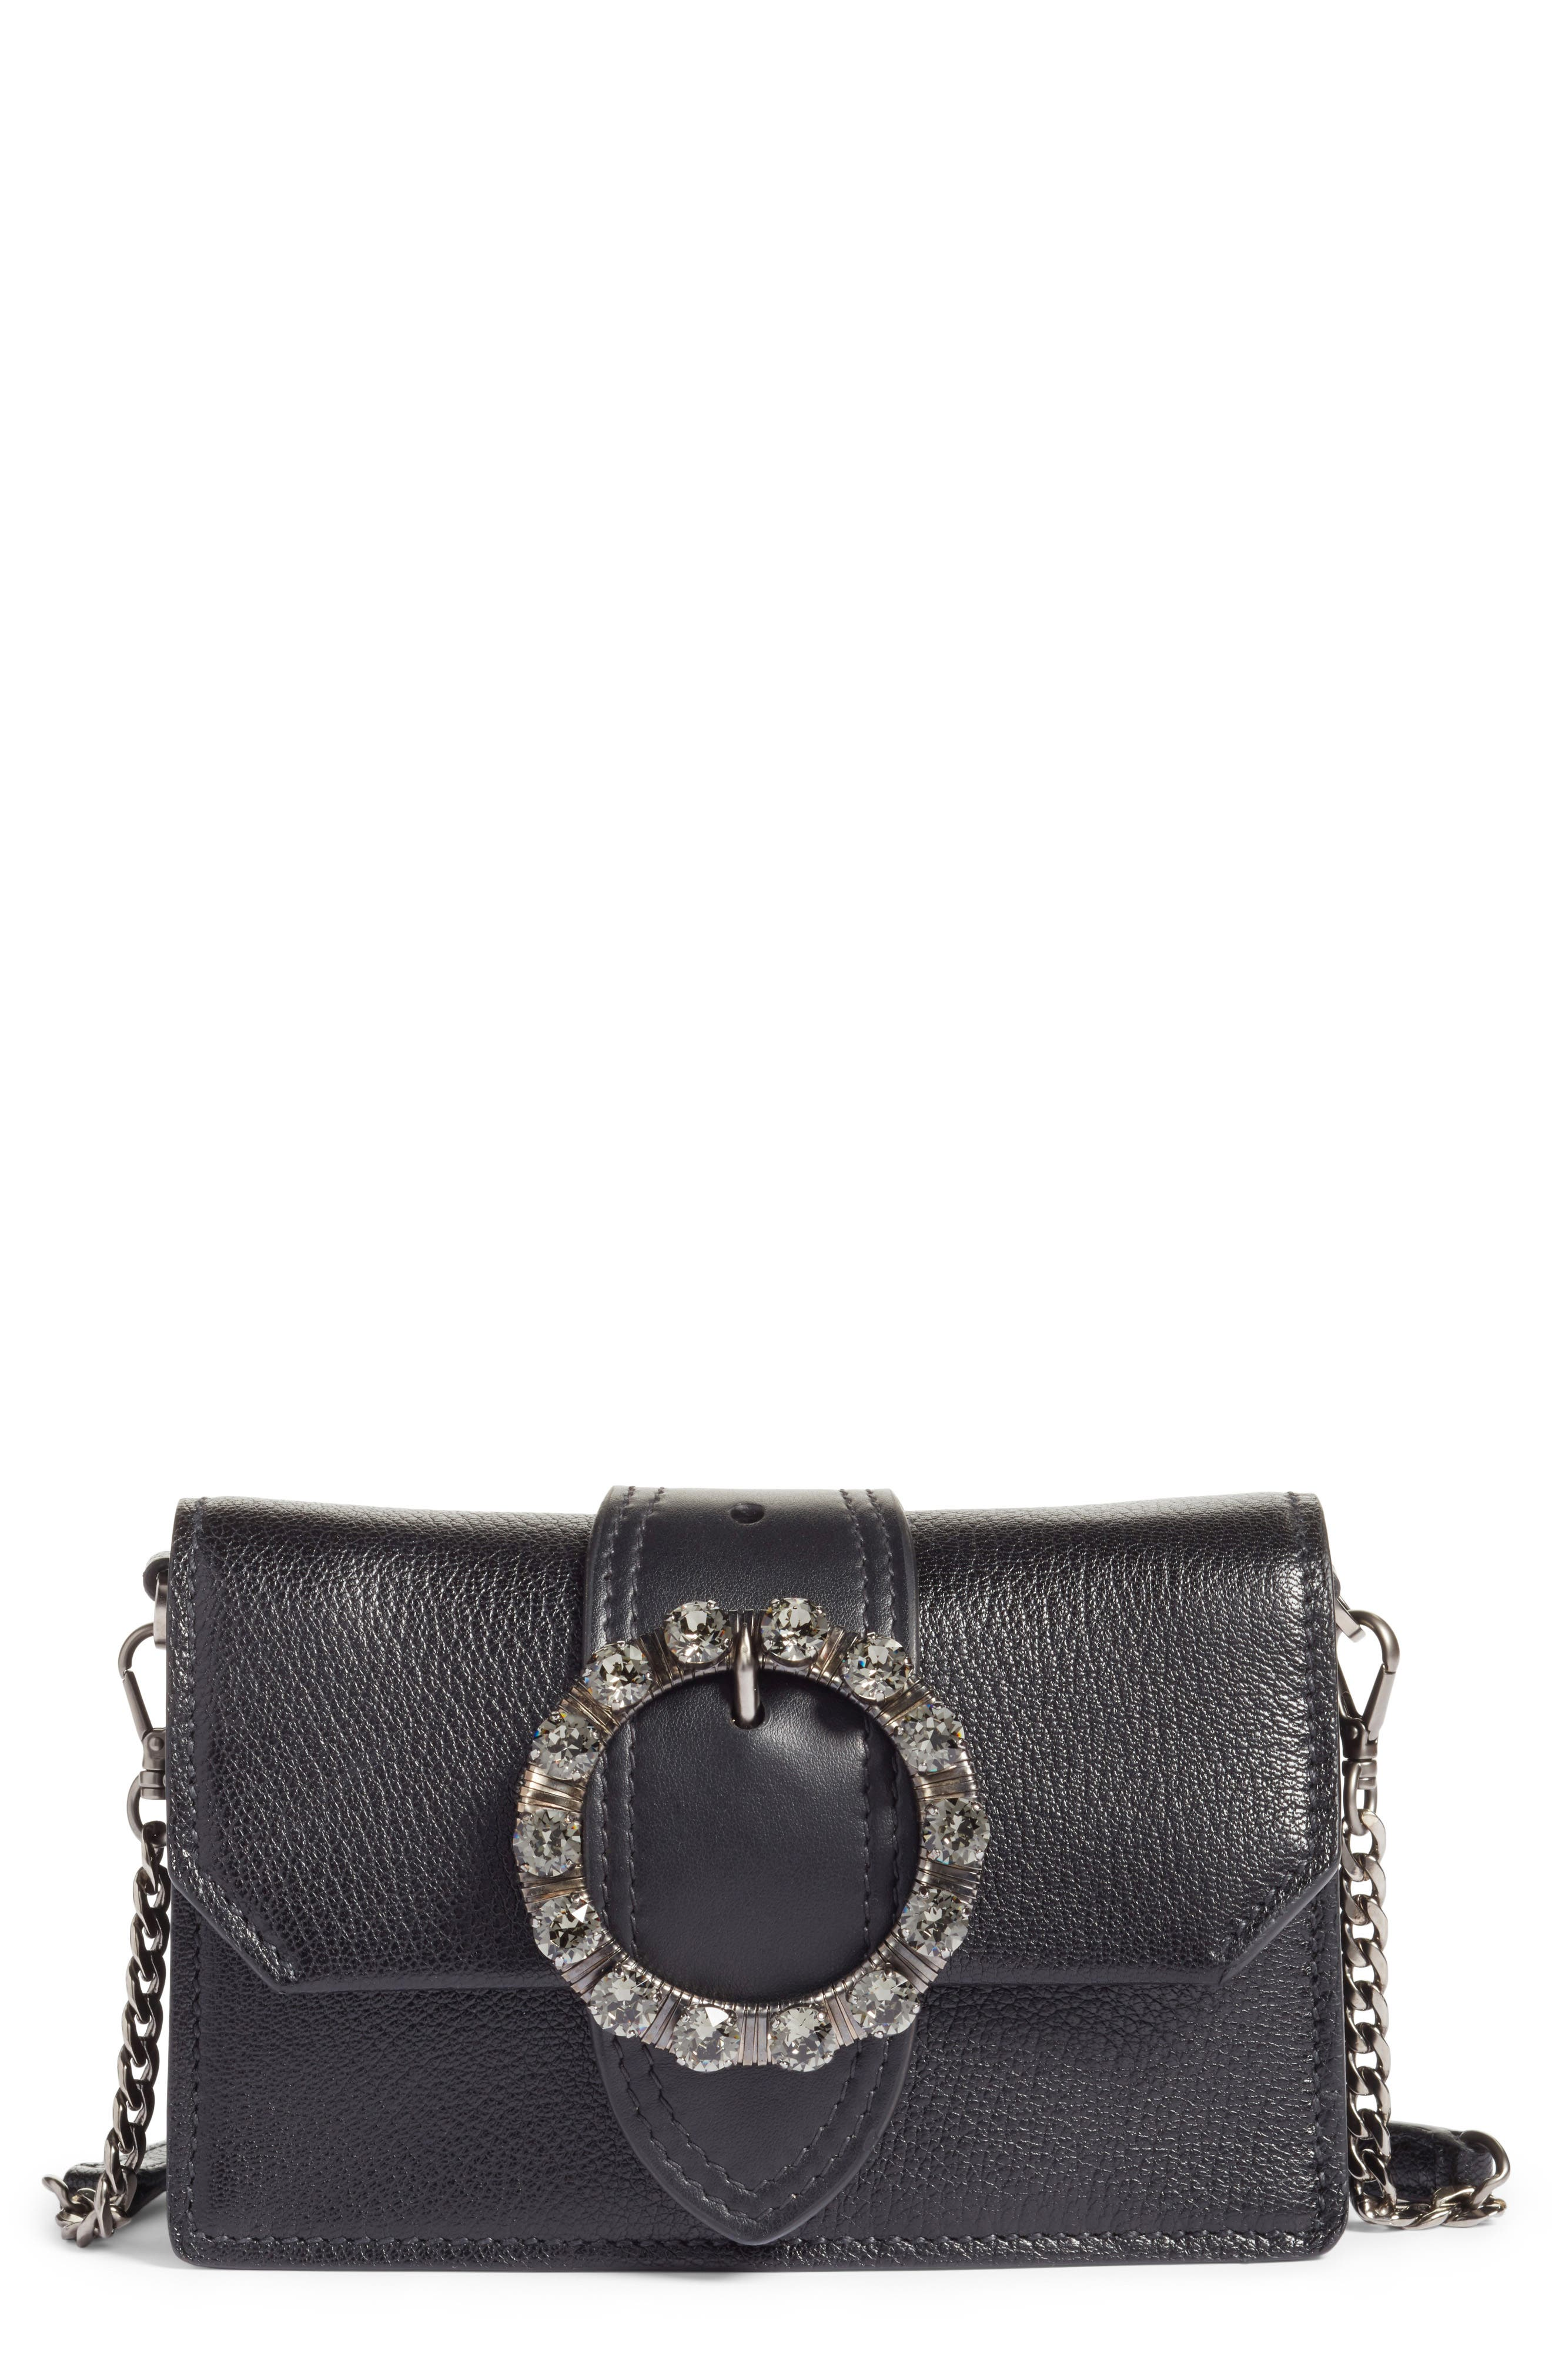 Lady Madras Crystal Embellished Leather Crossbody Bag,                             Main thumbnail 1, color,                             001